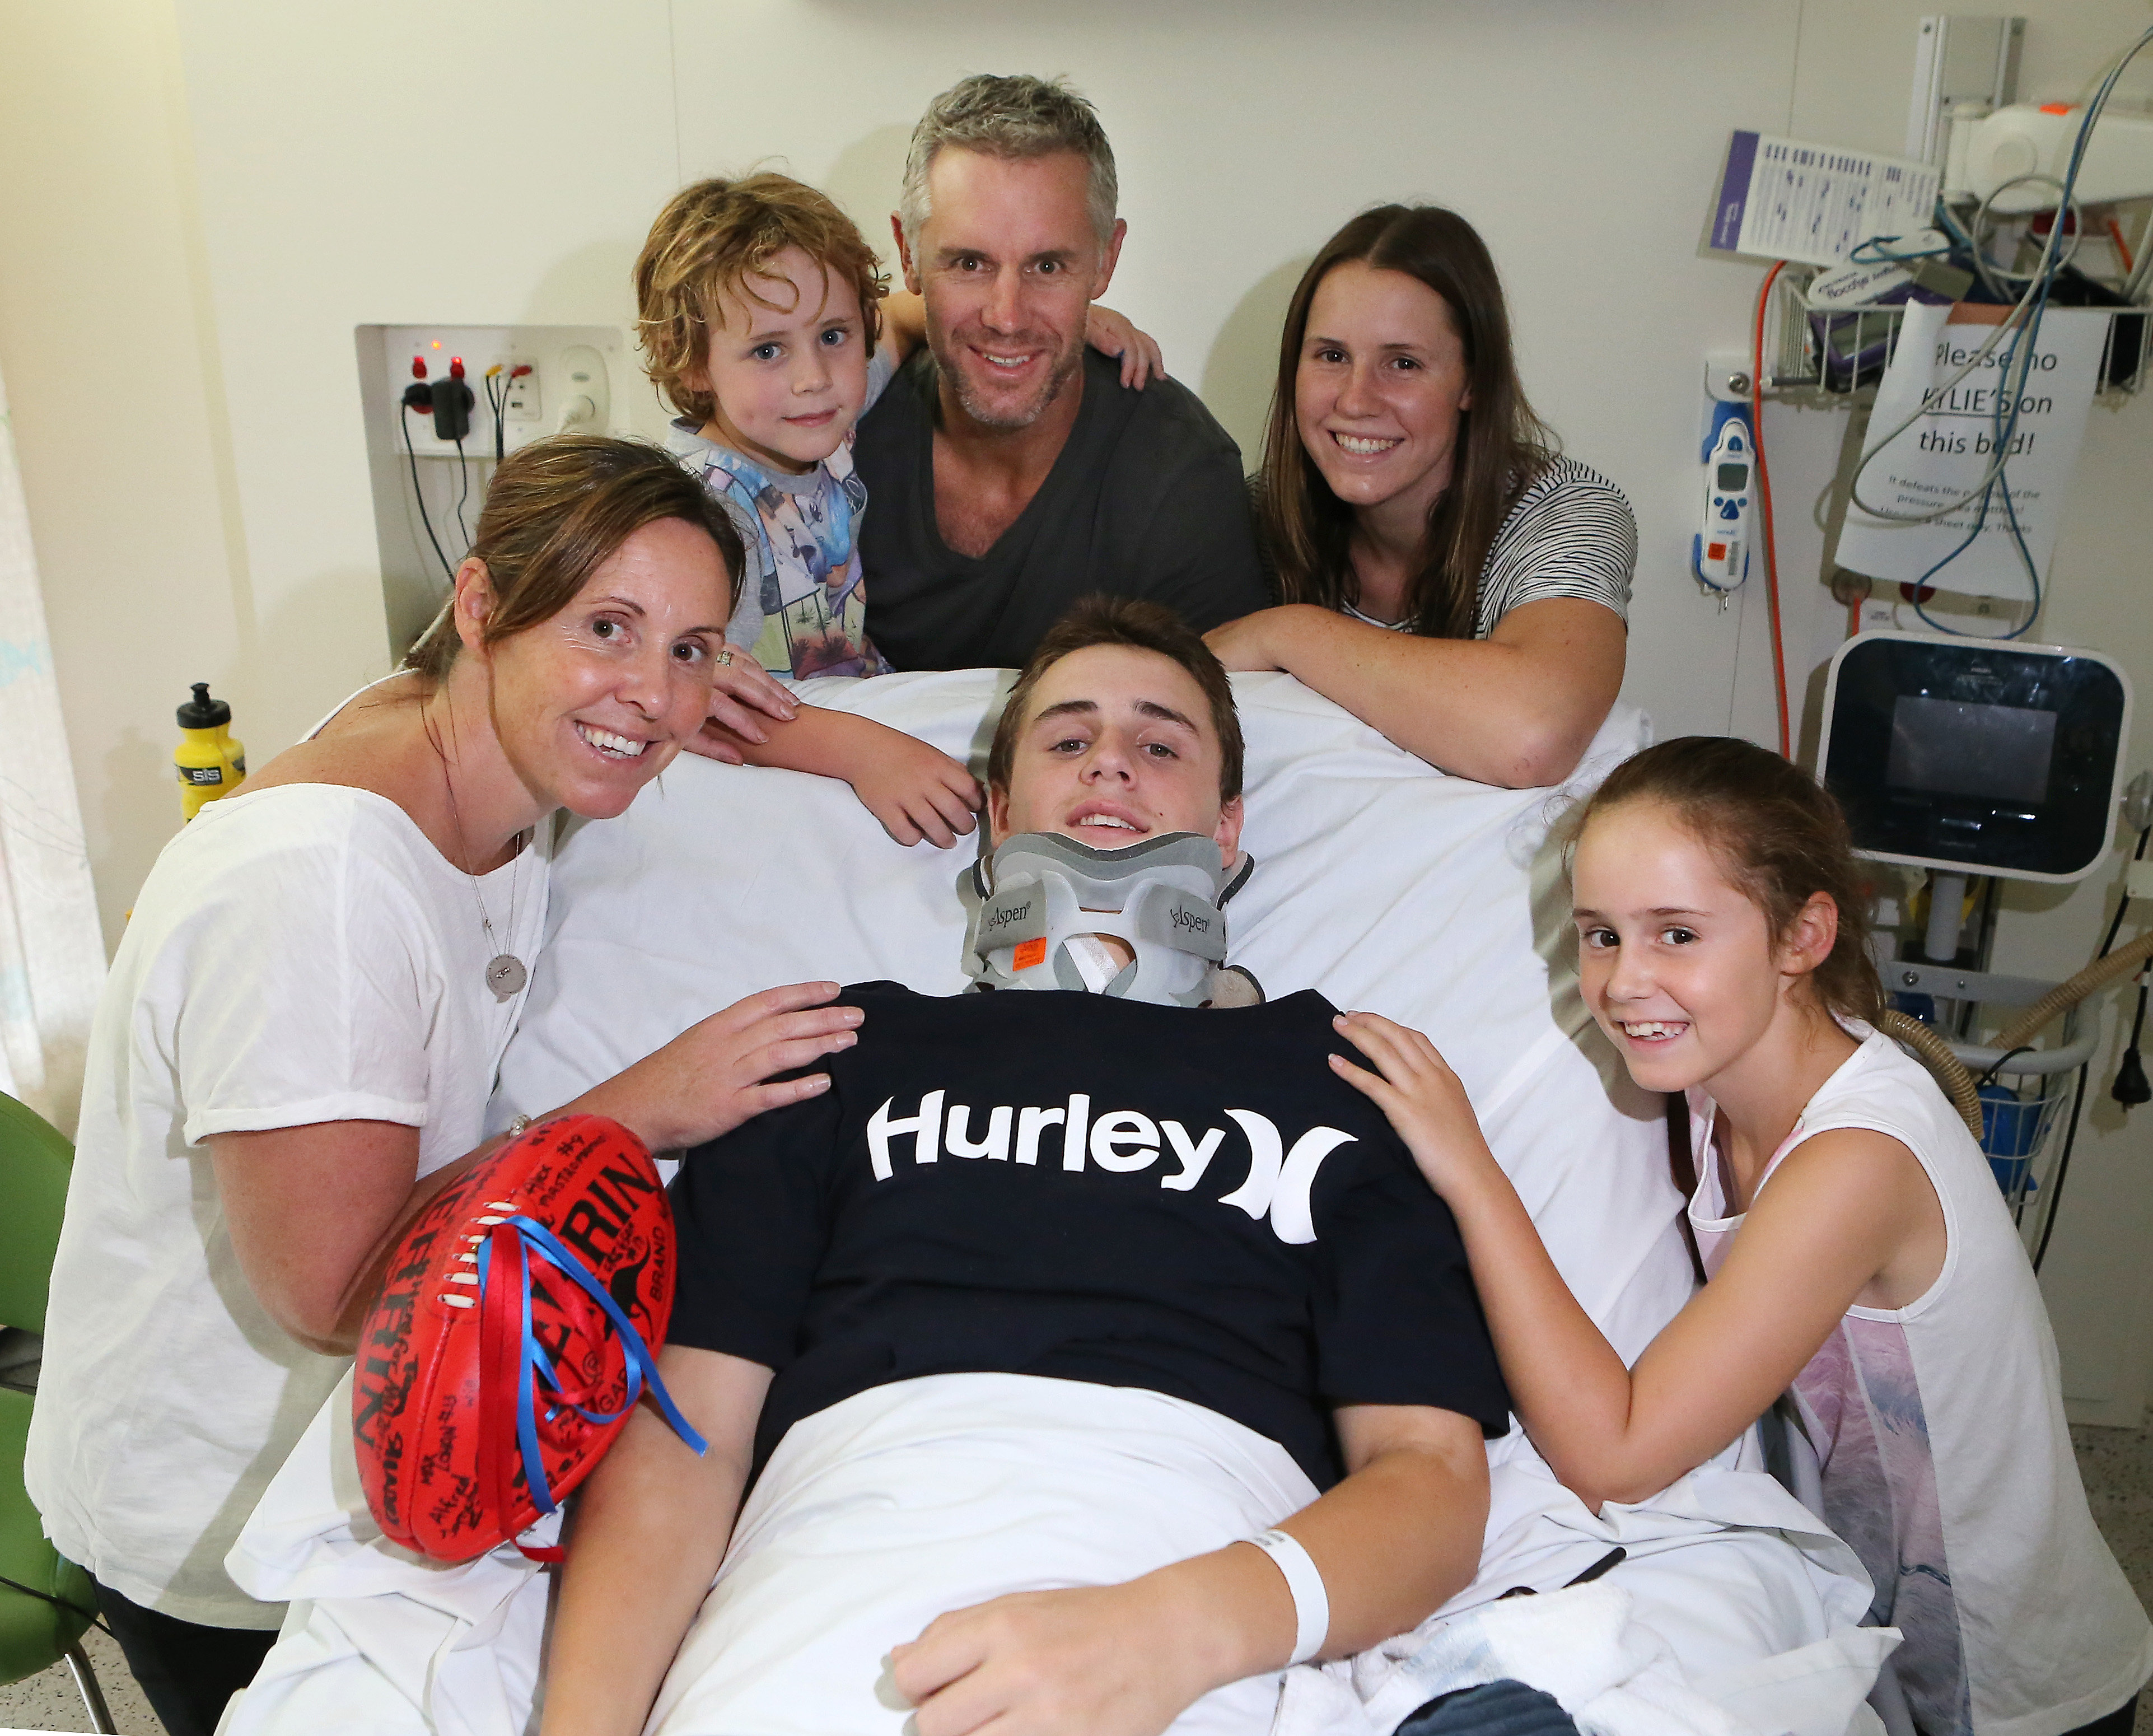 CHP_Export_133318961_Will Murray 14 is now quadriplegic after an diving accident off black rock